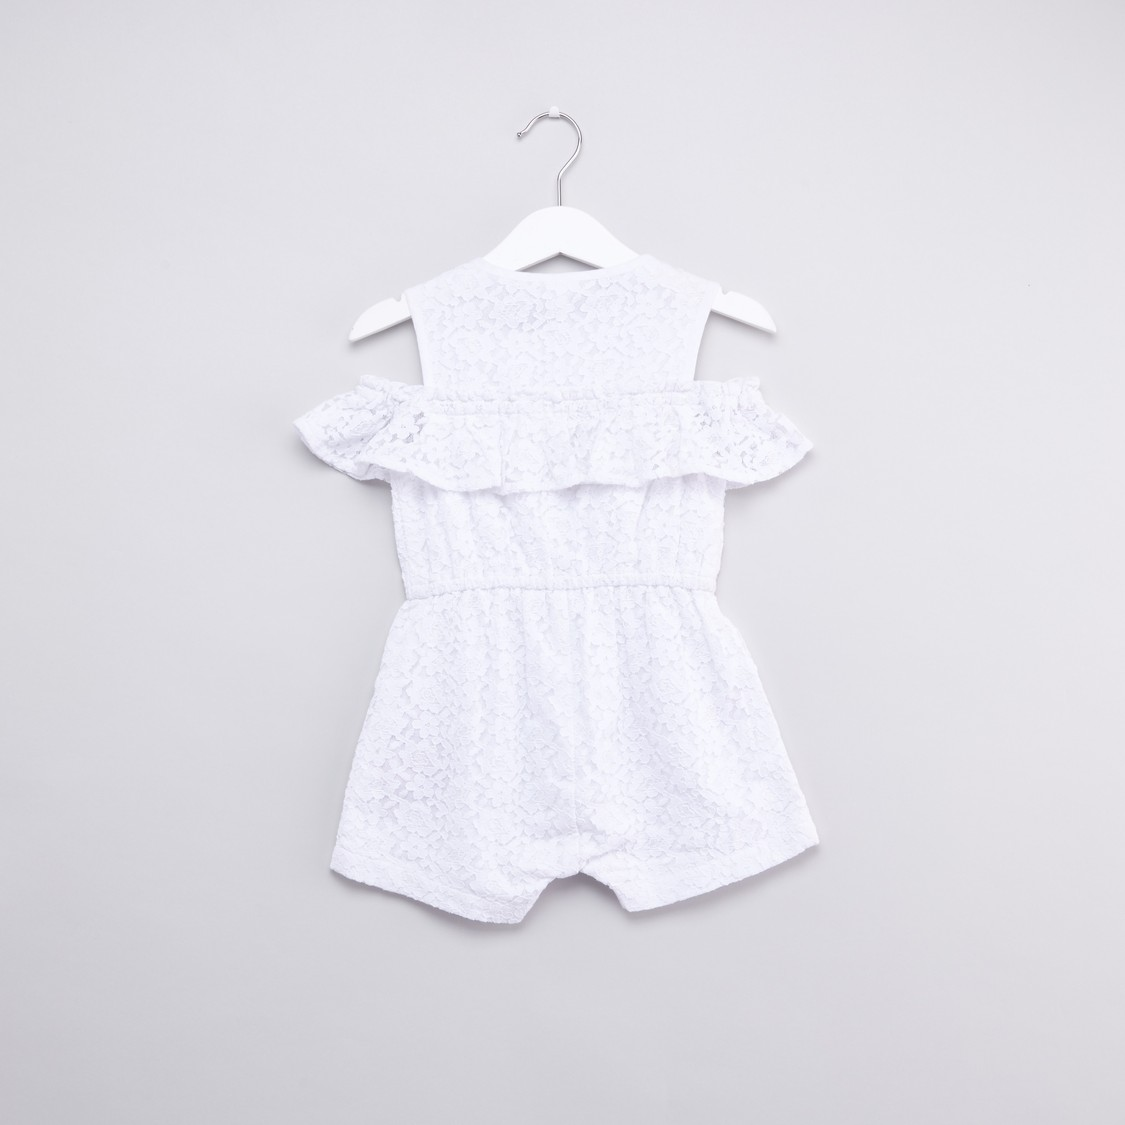 Embroidered Sleeveless Romper with Lace Detail